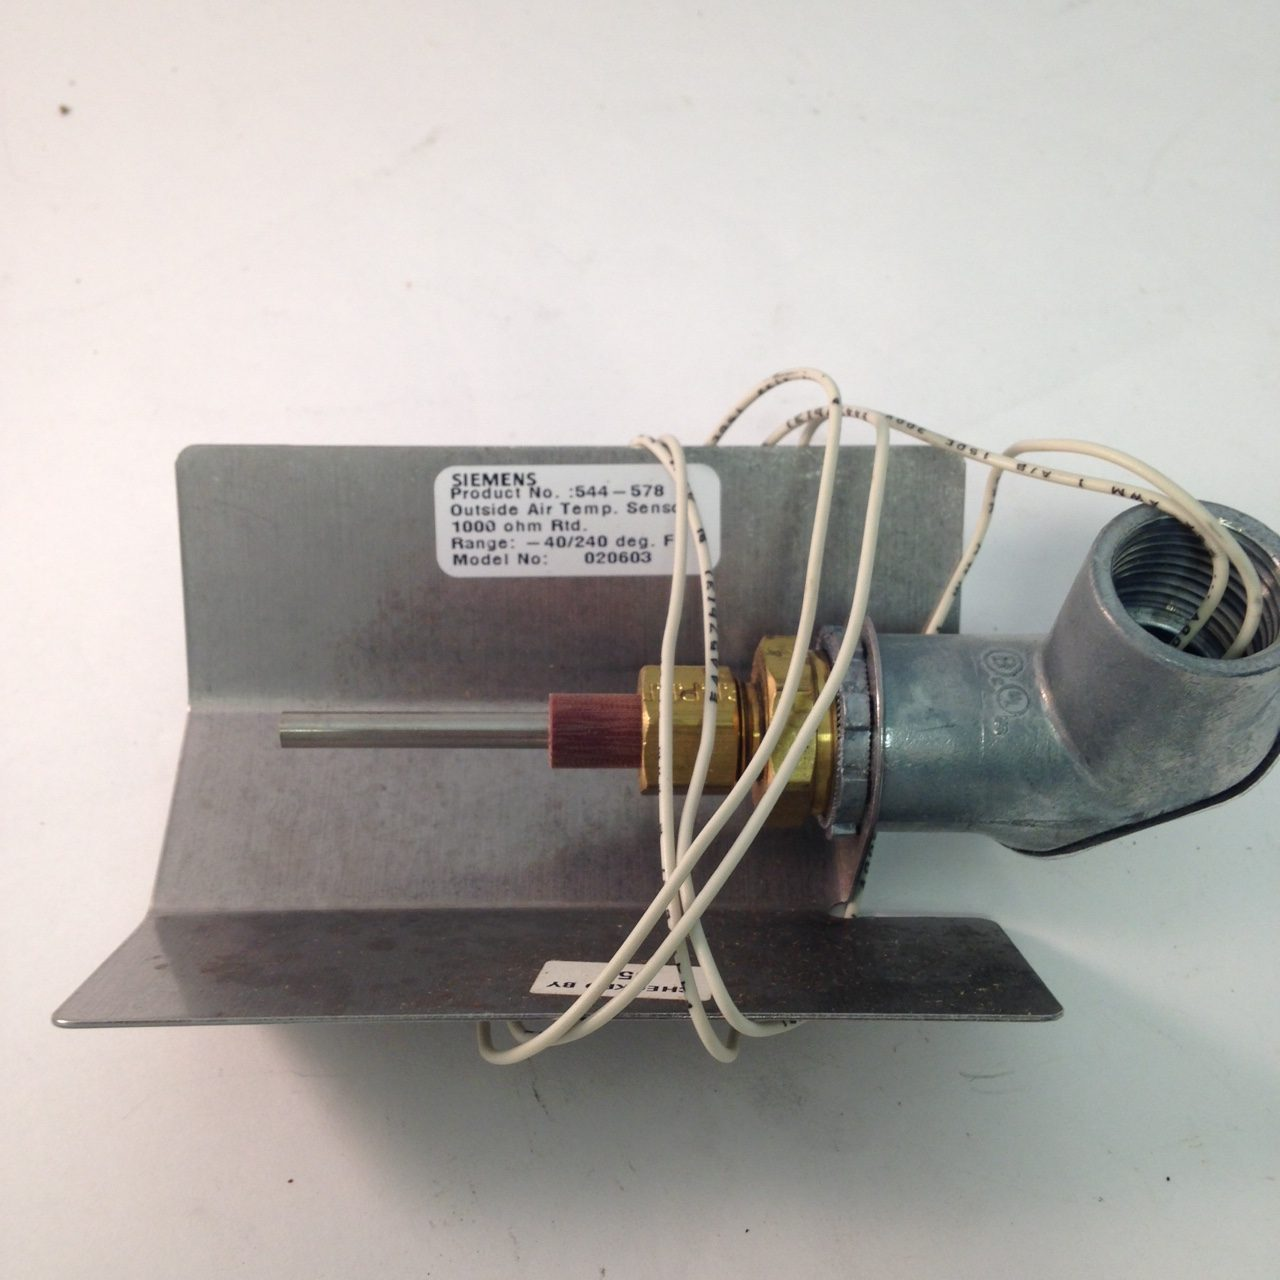 Siemens 544-578 Outside Air temp sensor